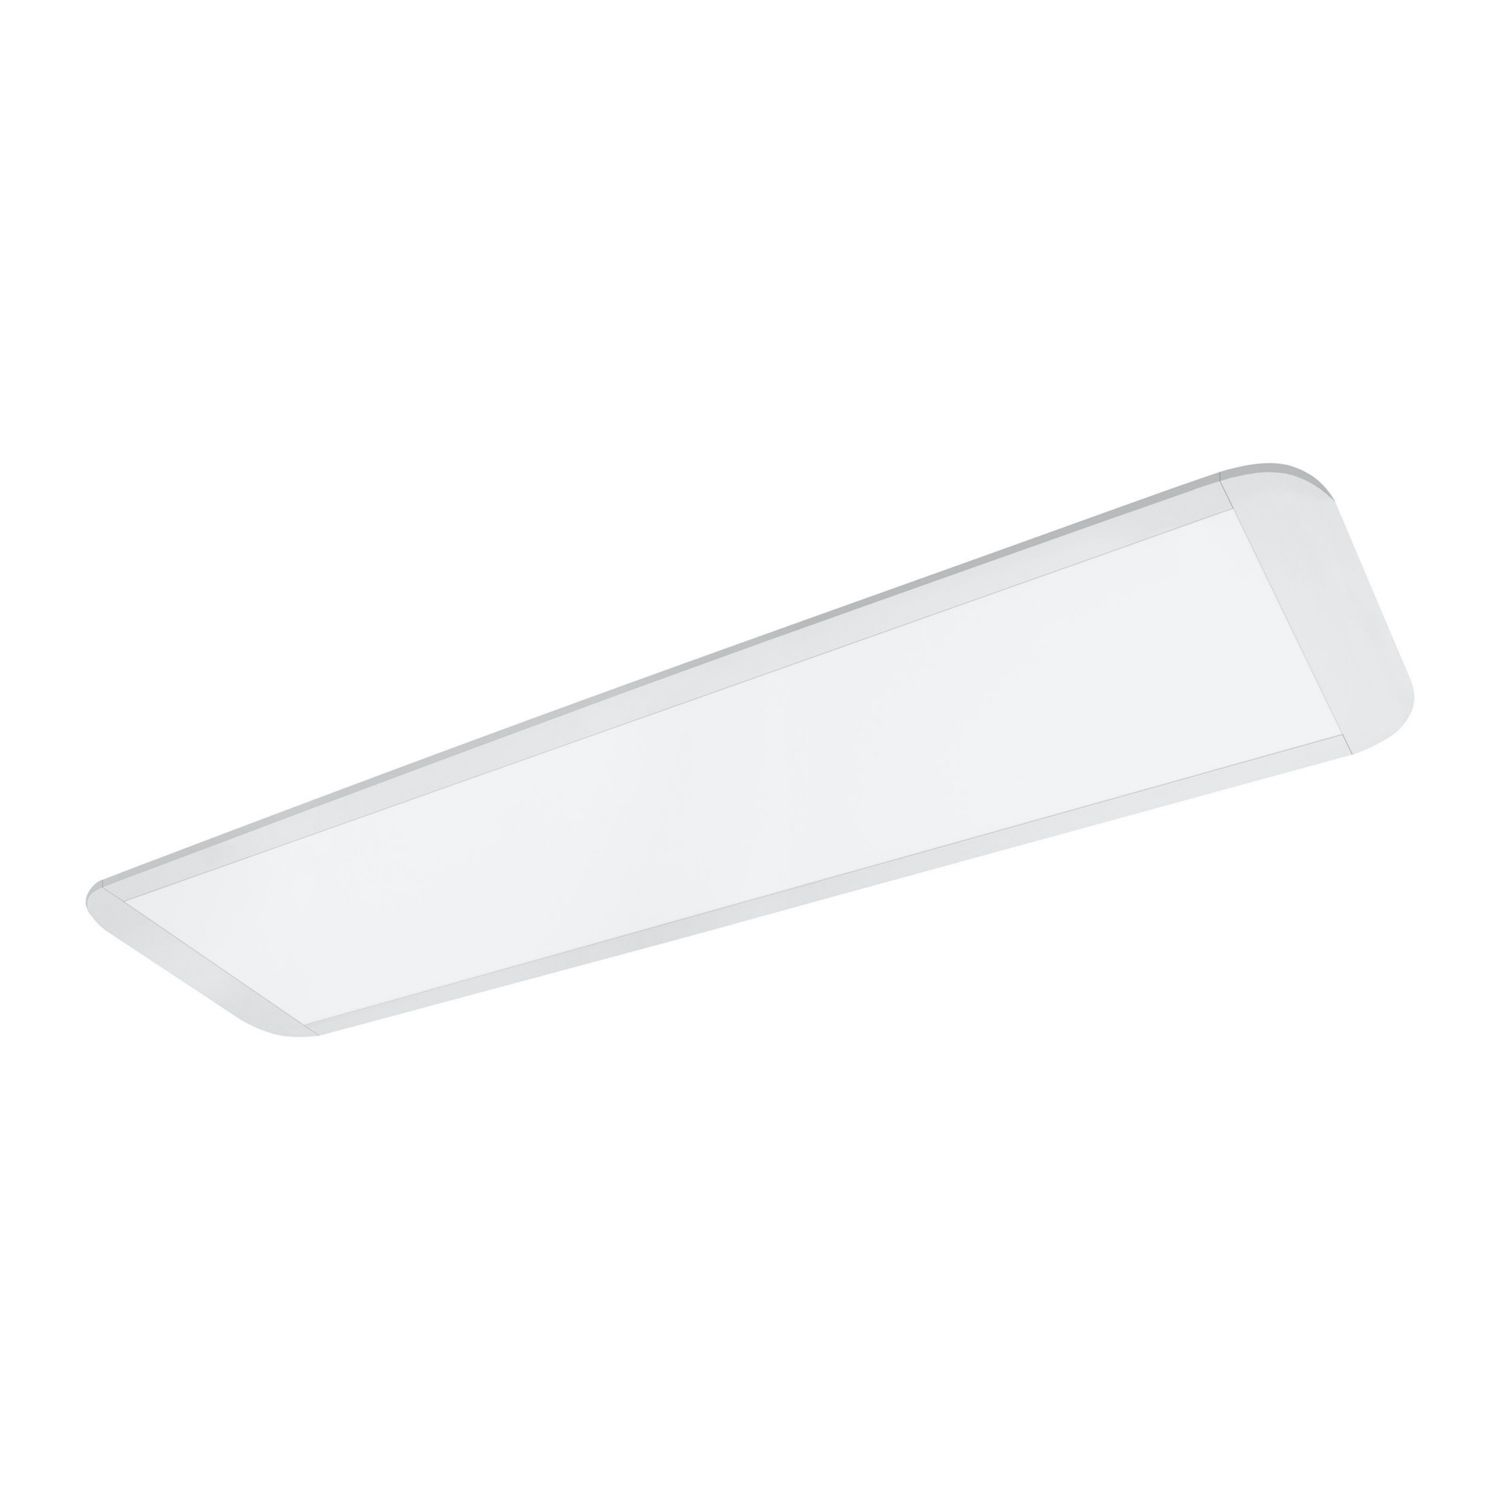 Ledvance LED panel Direct/Indirect 30x120cm 3000K 36W UGR <19 | varm hvit - erstatter 2x36W